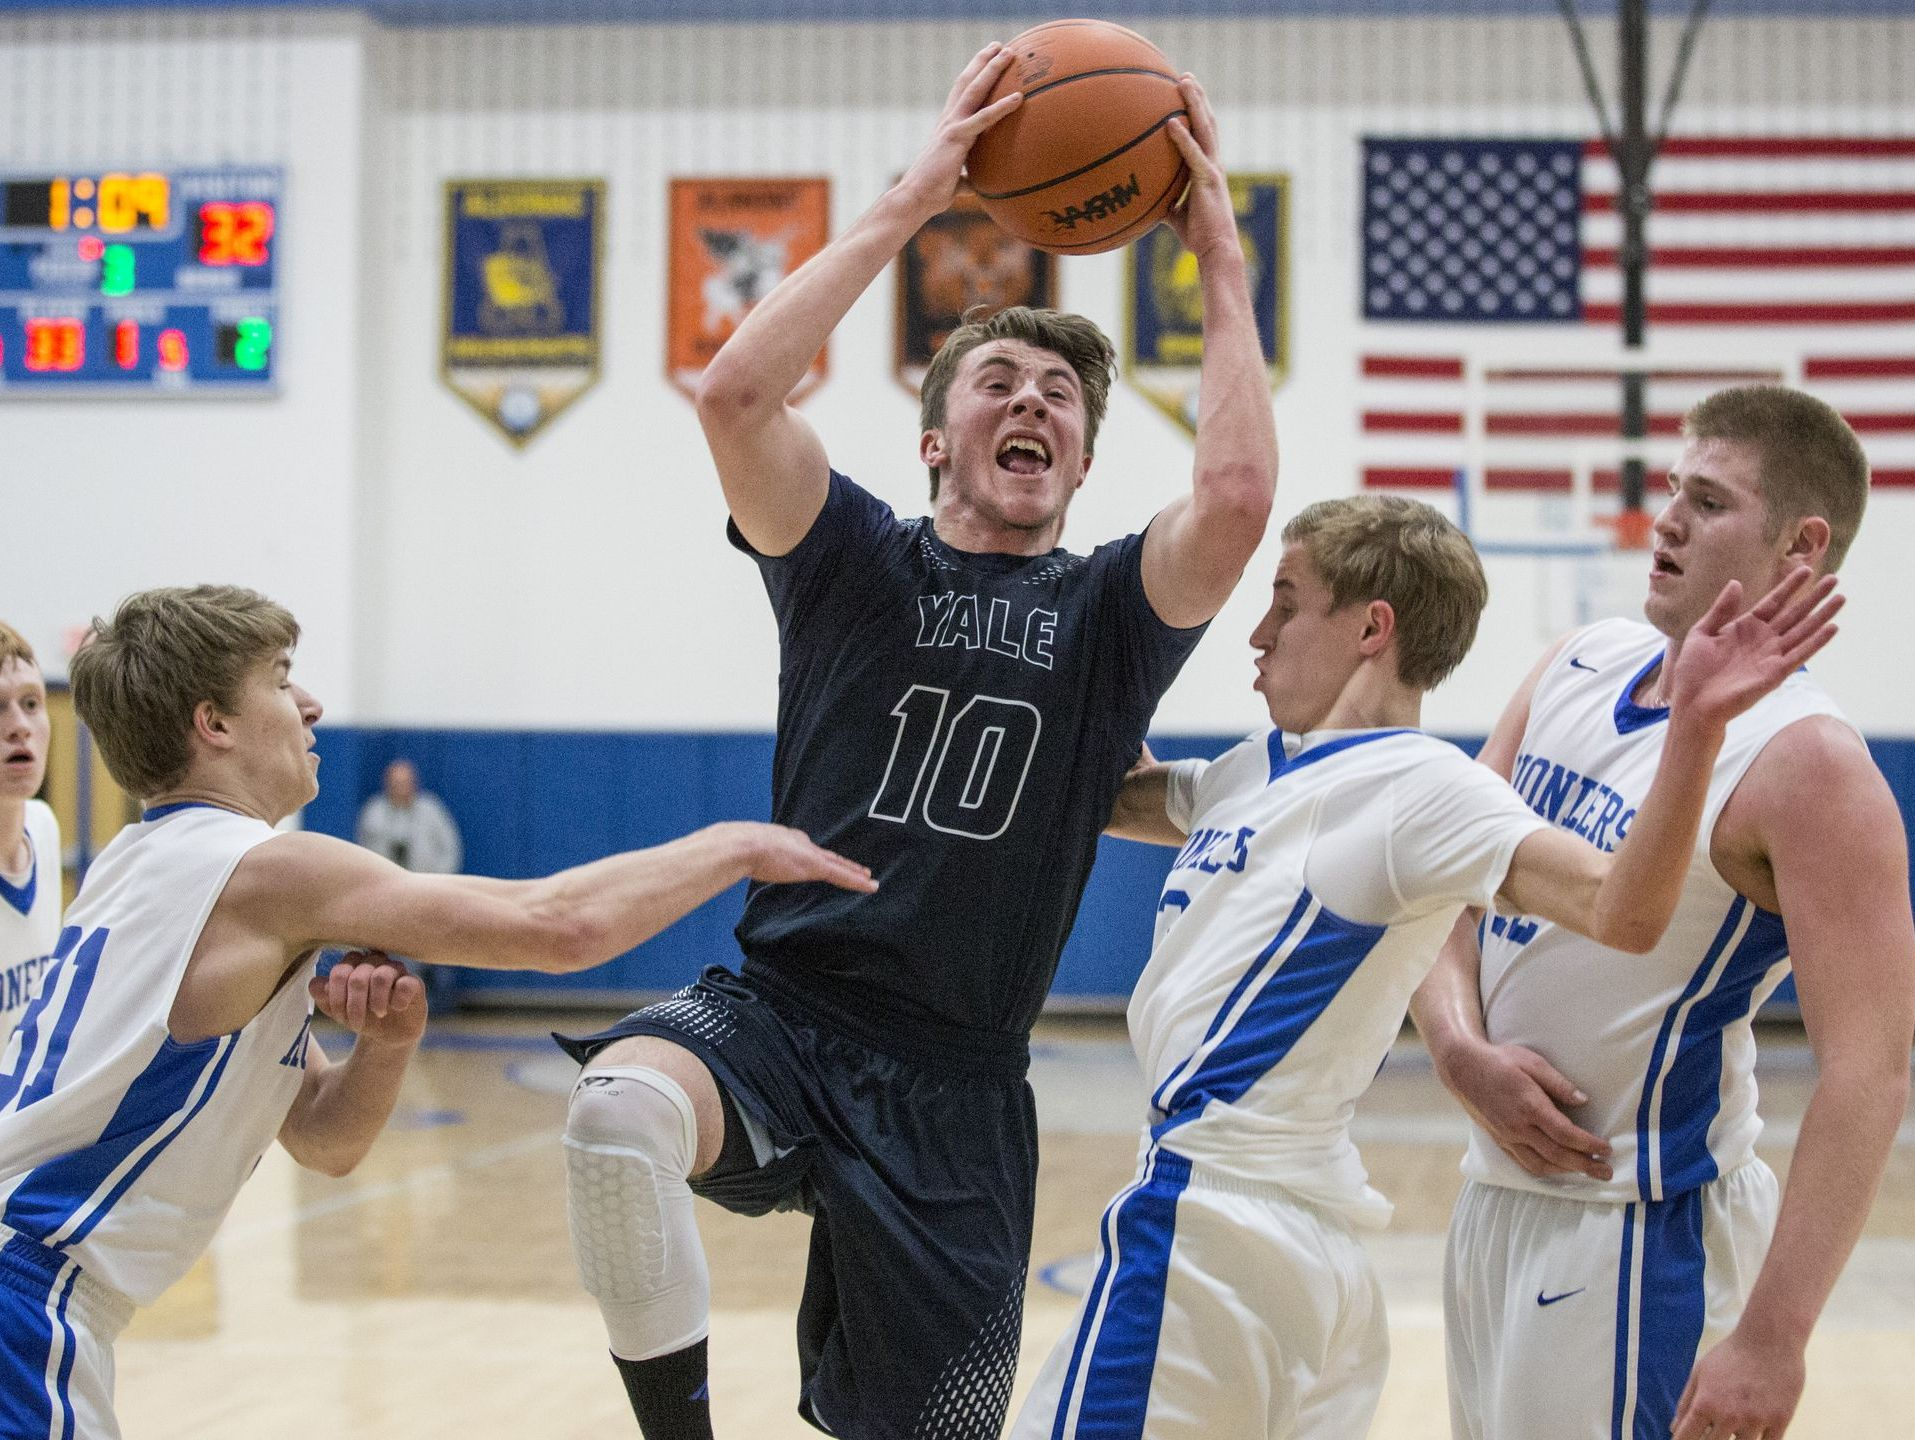 Yale senior Cody Kelgey goes for a shot during a district final basketball game Friday, March 11, 2016 at Cros-Lex High School.